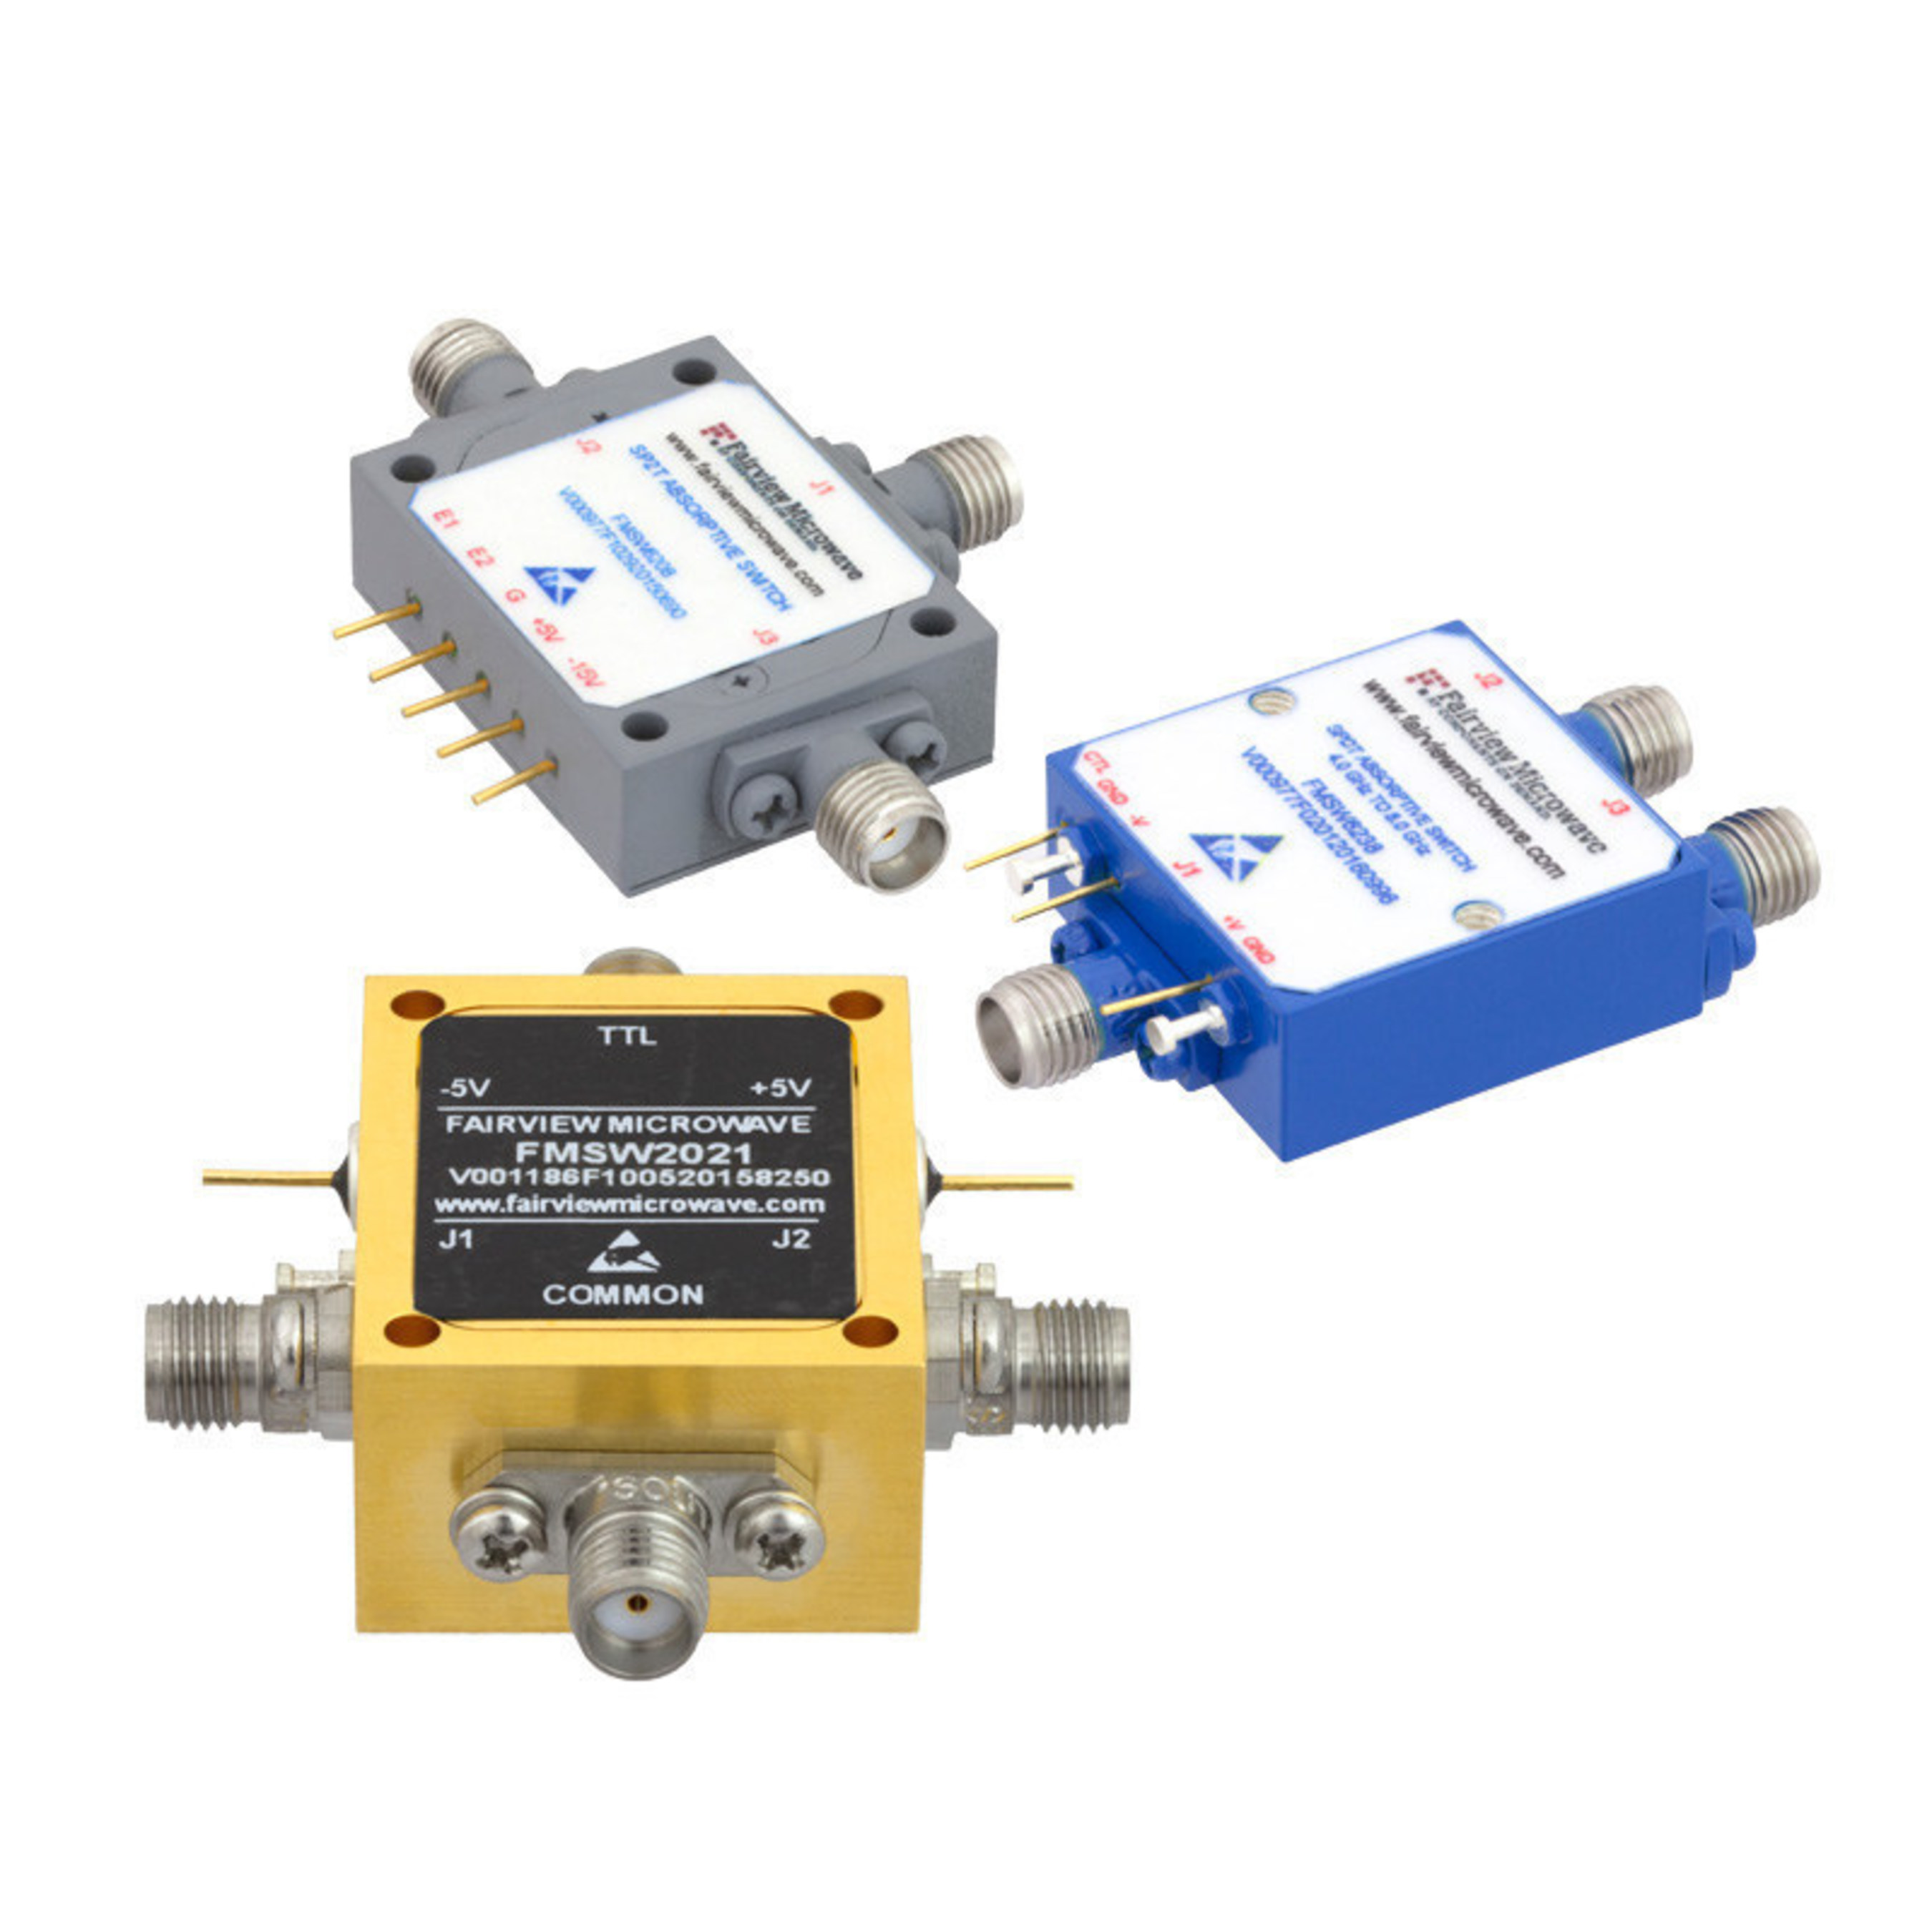 Fairview Microwave Introduces A New Line Of Single Pole Double Throw Switch Schematic Additionally The Benefit Fast Switching Speed Performance Is Critical In Applications Where Multiple Switches Are Being Used Series Or Highly